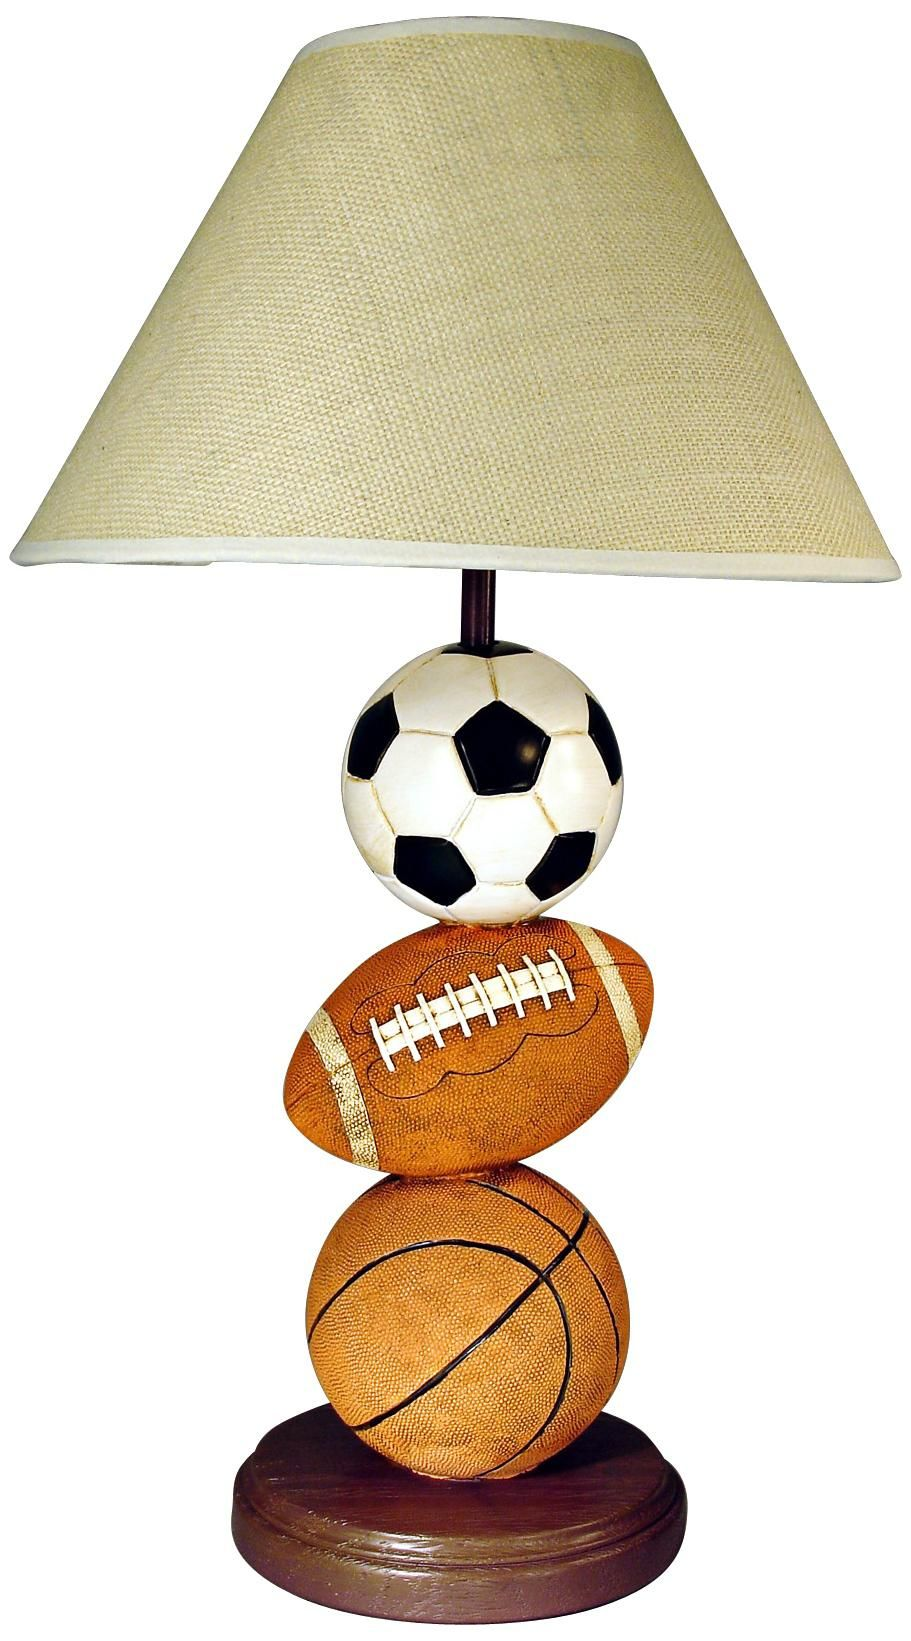 3 Ball Sports Themed 22 25 High Table Lamp With Shade